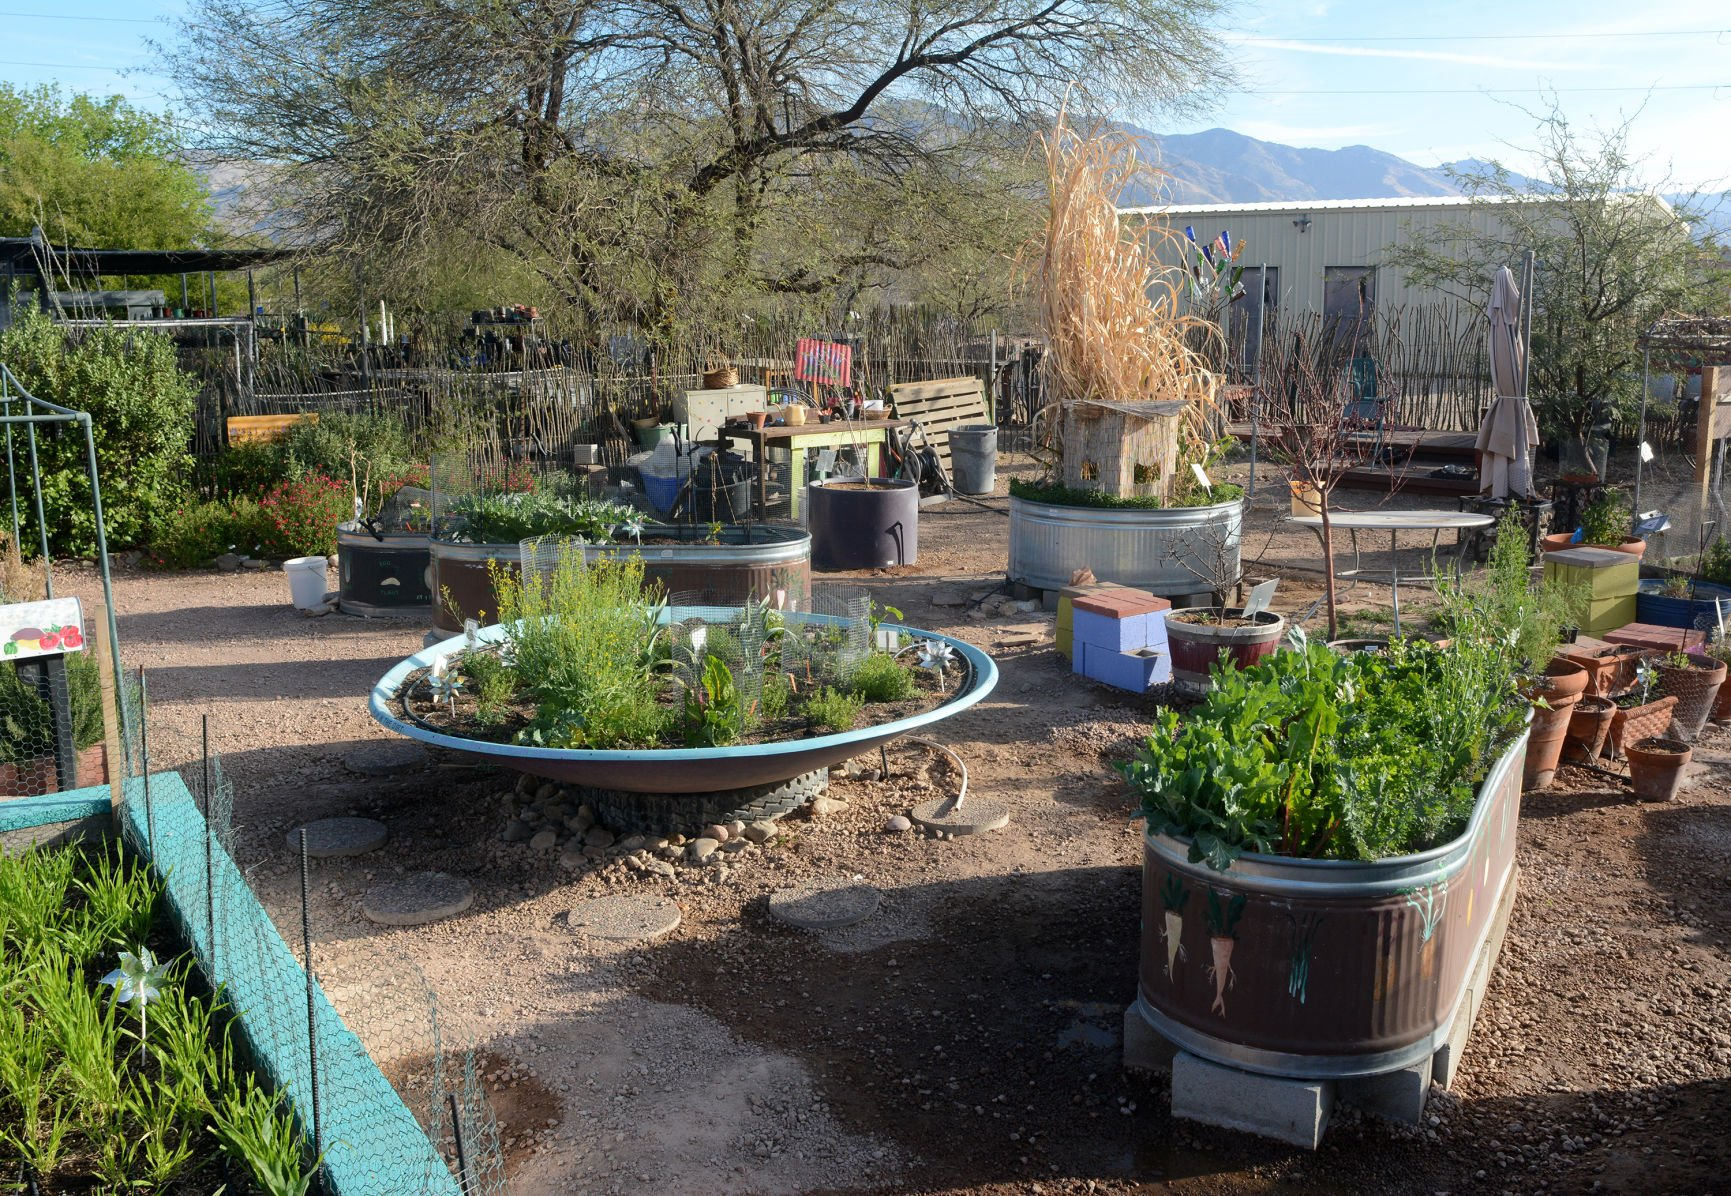 5 Tips For Container Gardening In The Desert Heat Tucson Summer Guide Tucson Com